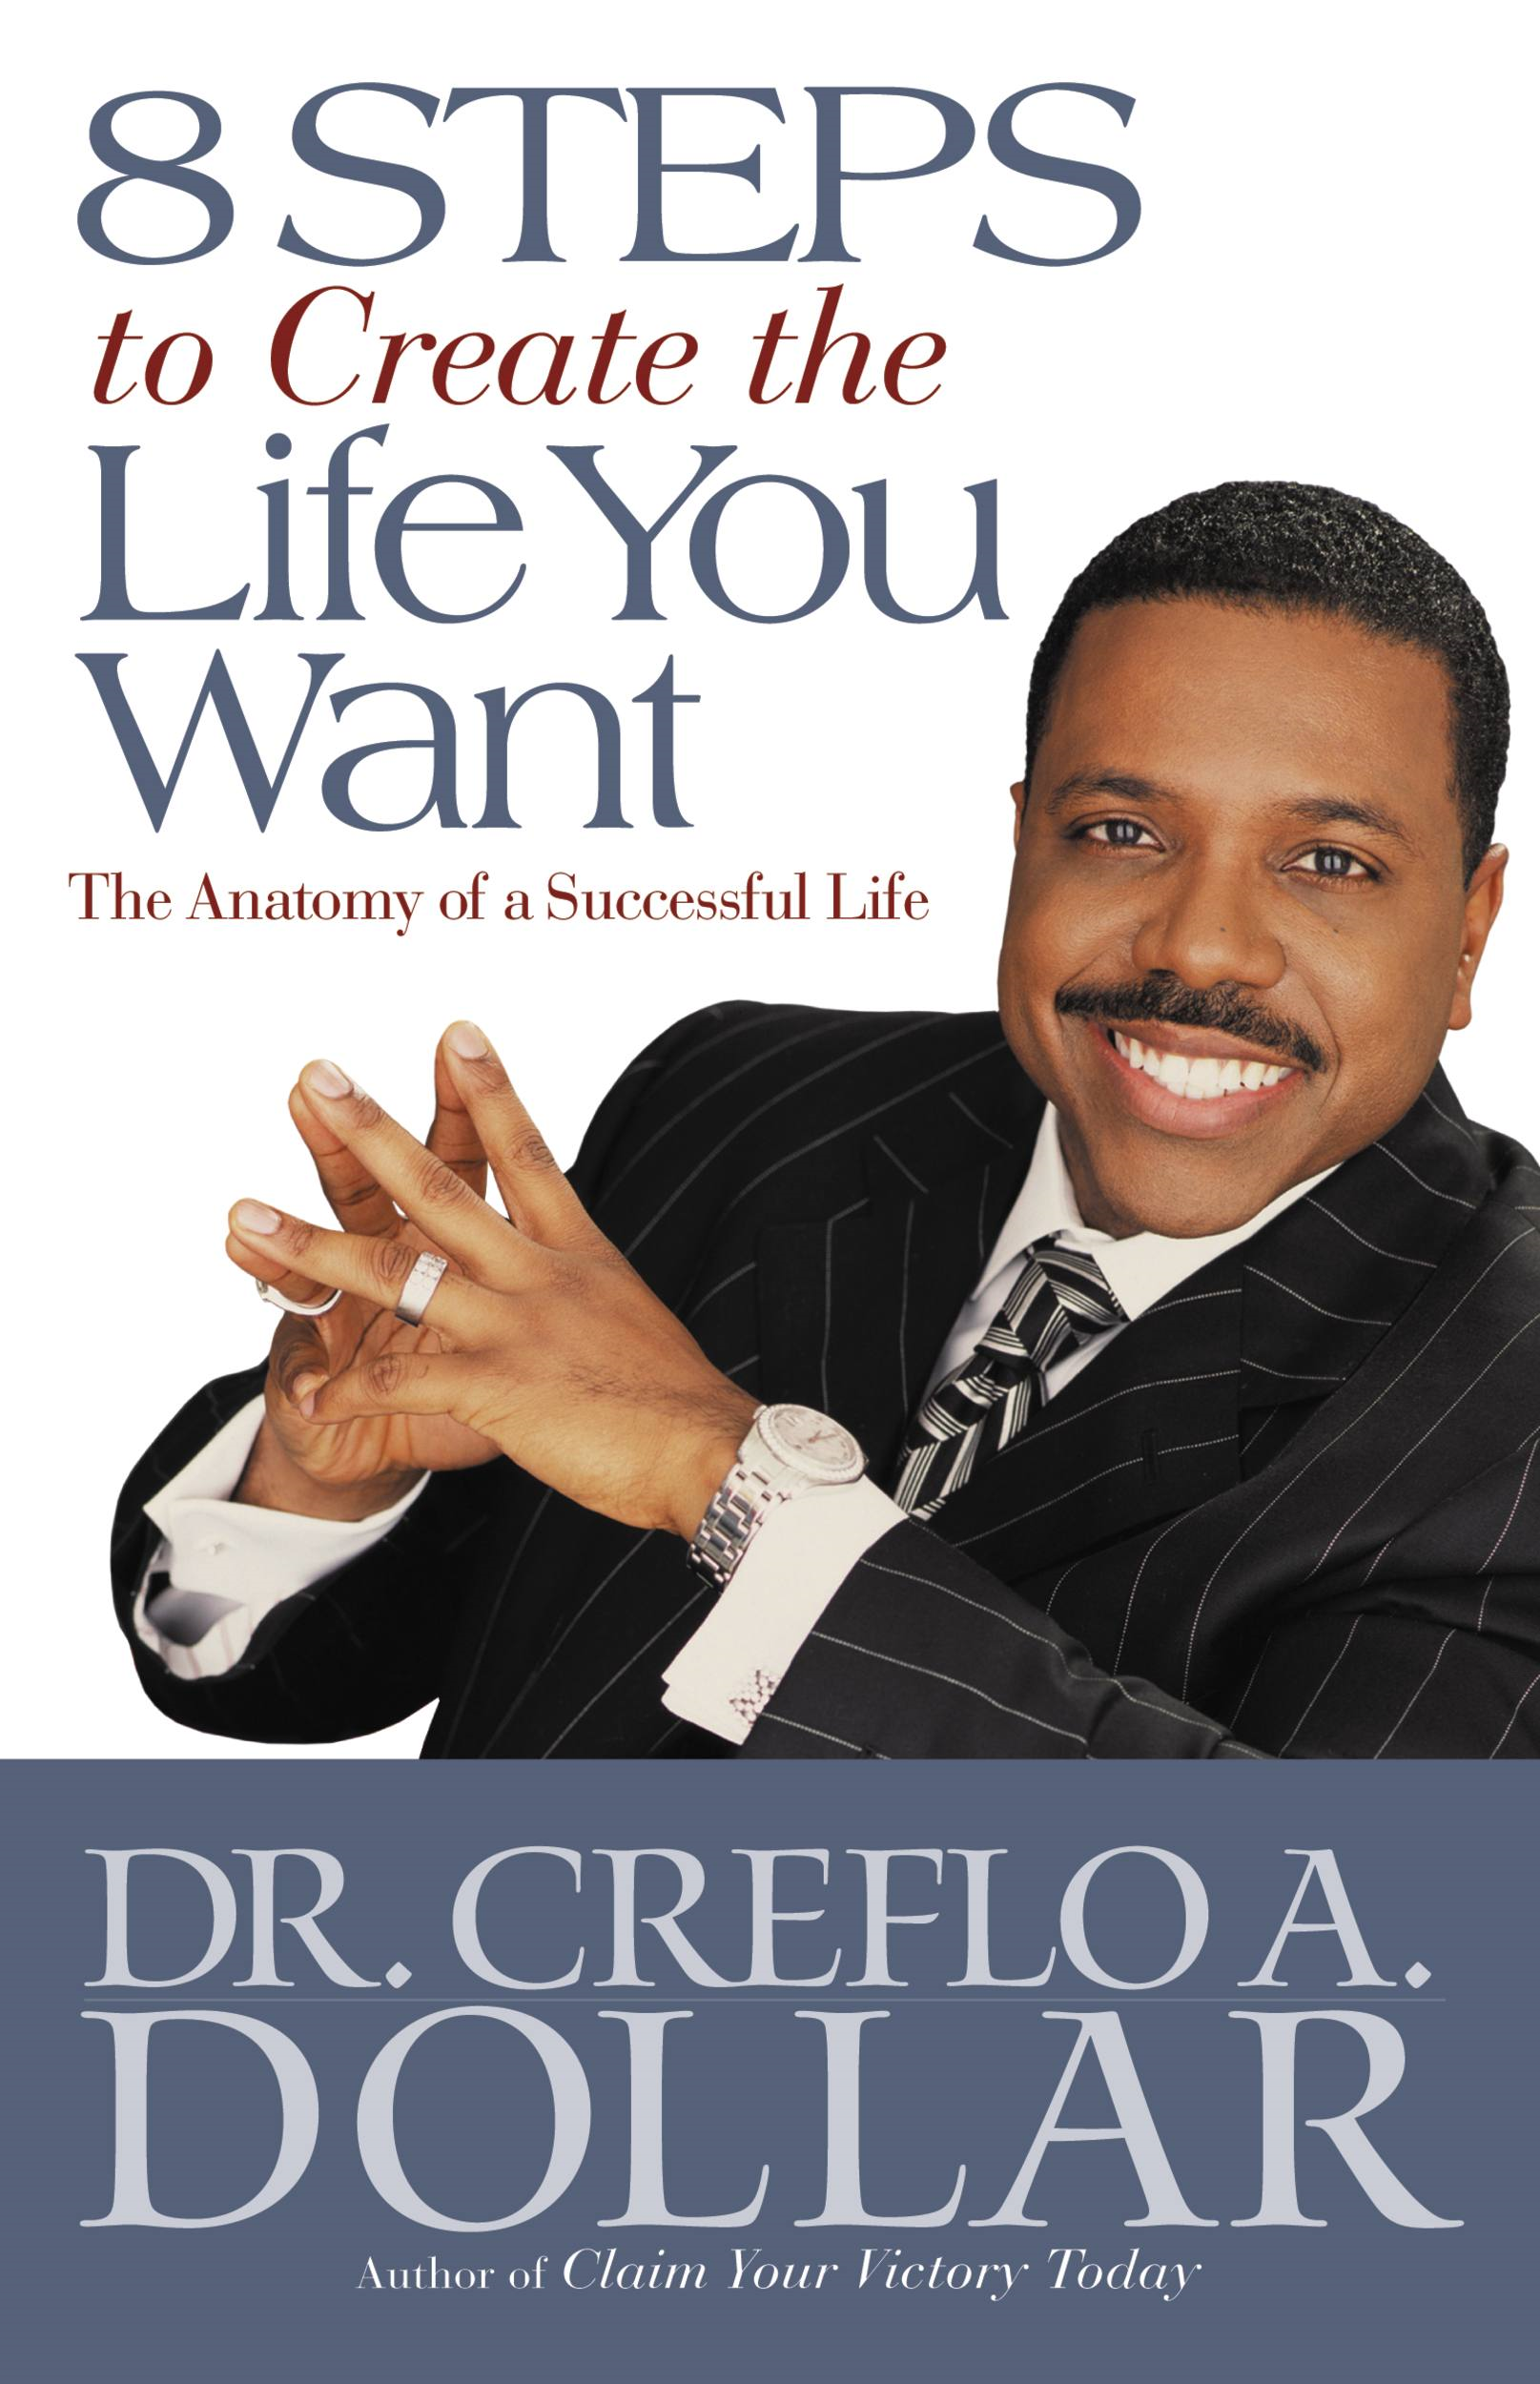 8 Steps to Create the Life You Want By: Creflo A. Dollar